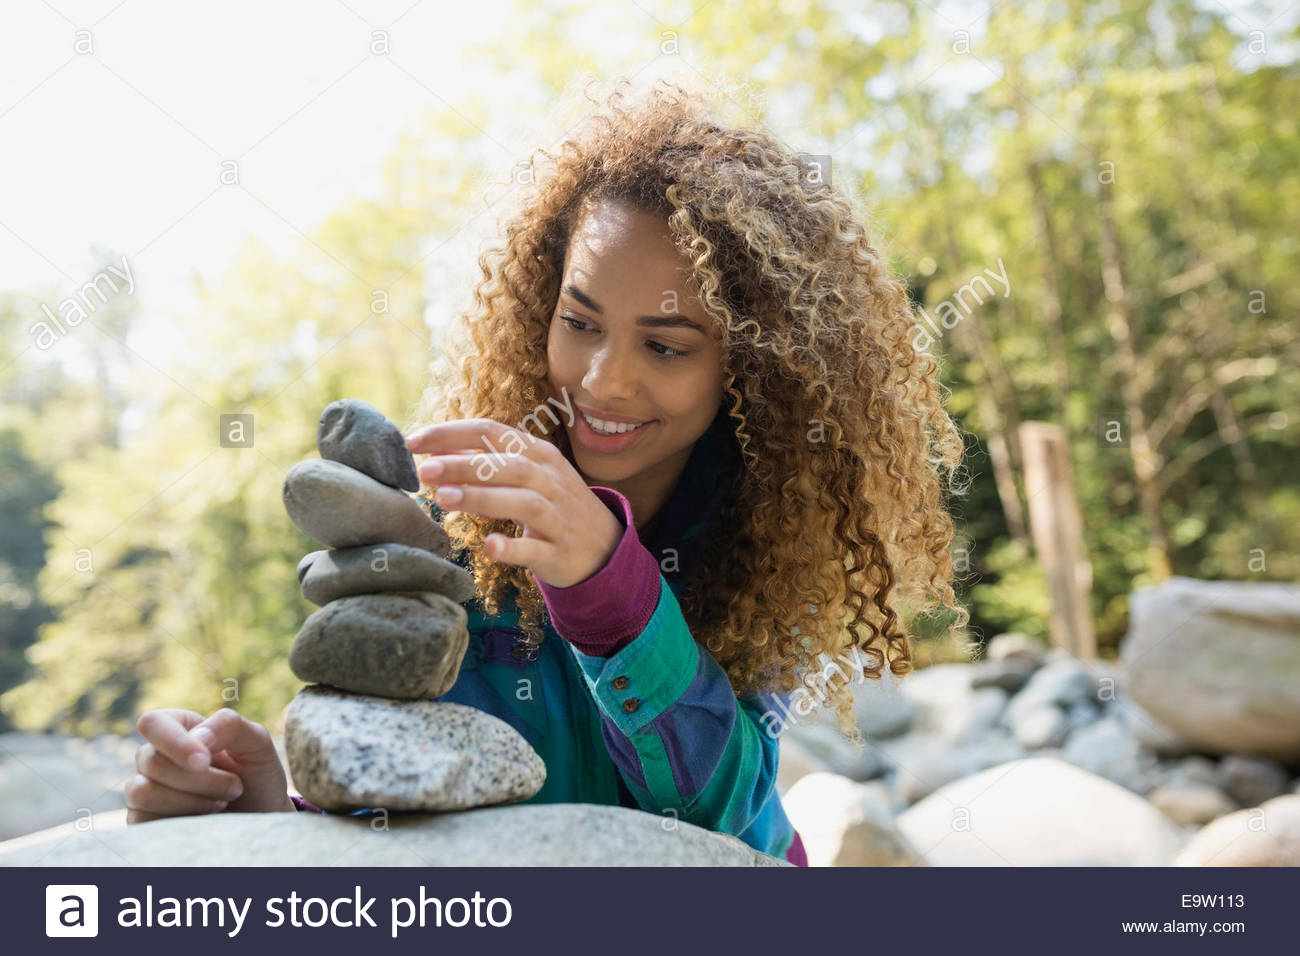 Young woman stacking stones in woods - Stock Image